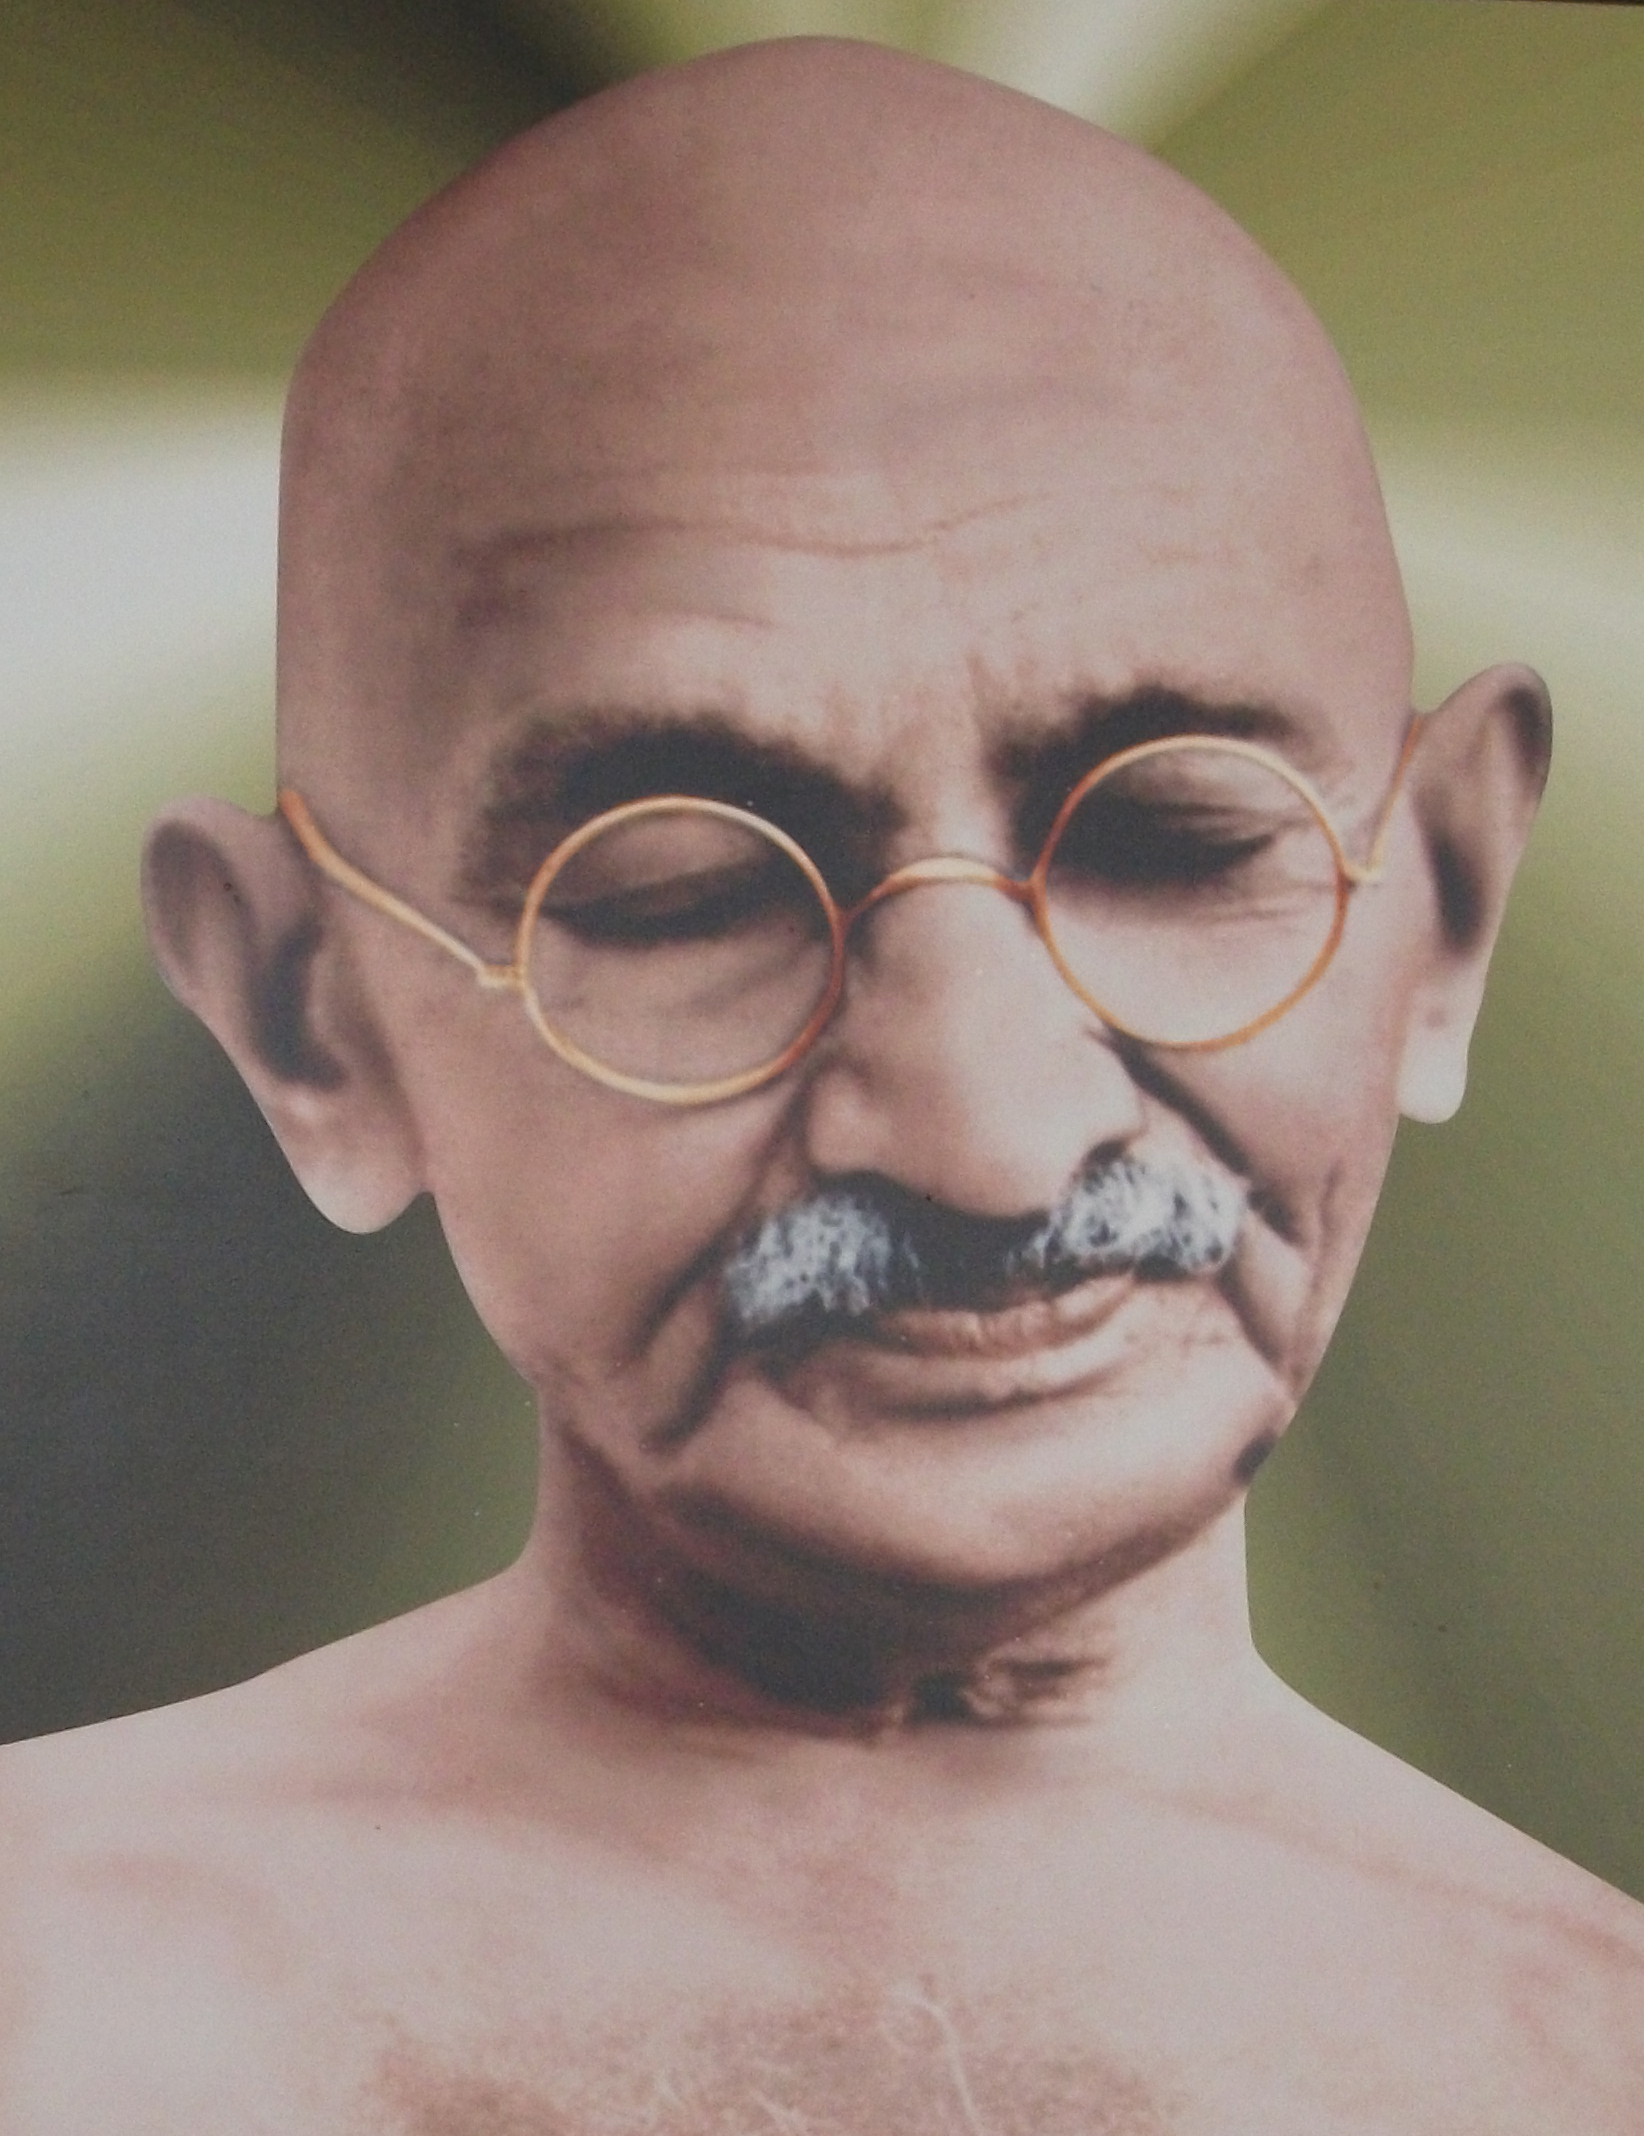 mahatma gandhi the childhood of a He is more commonly called mahatma gandhi mahatma is an honorific meaning great-soul or venerable in sanskrit he was first called this in 1914 in south africa.